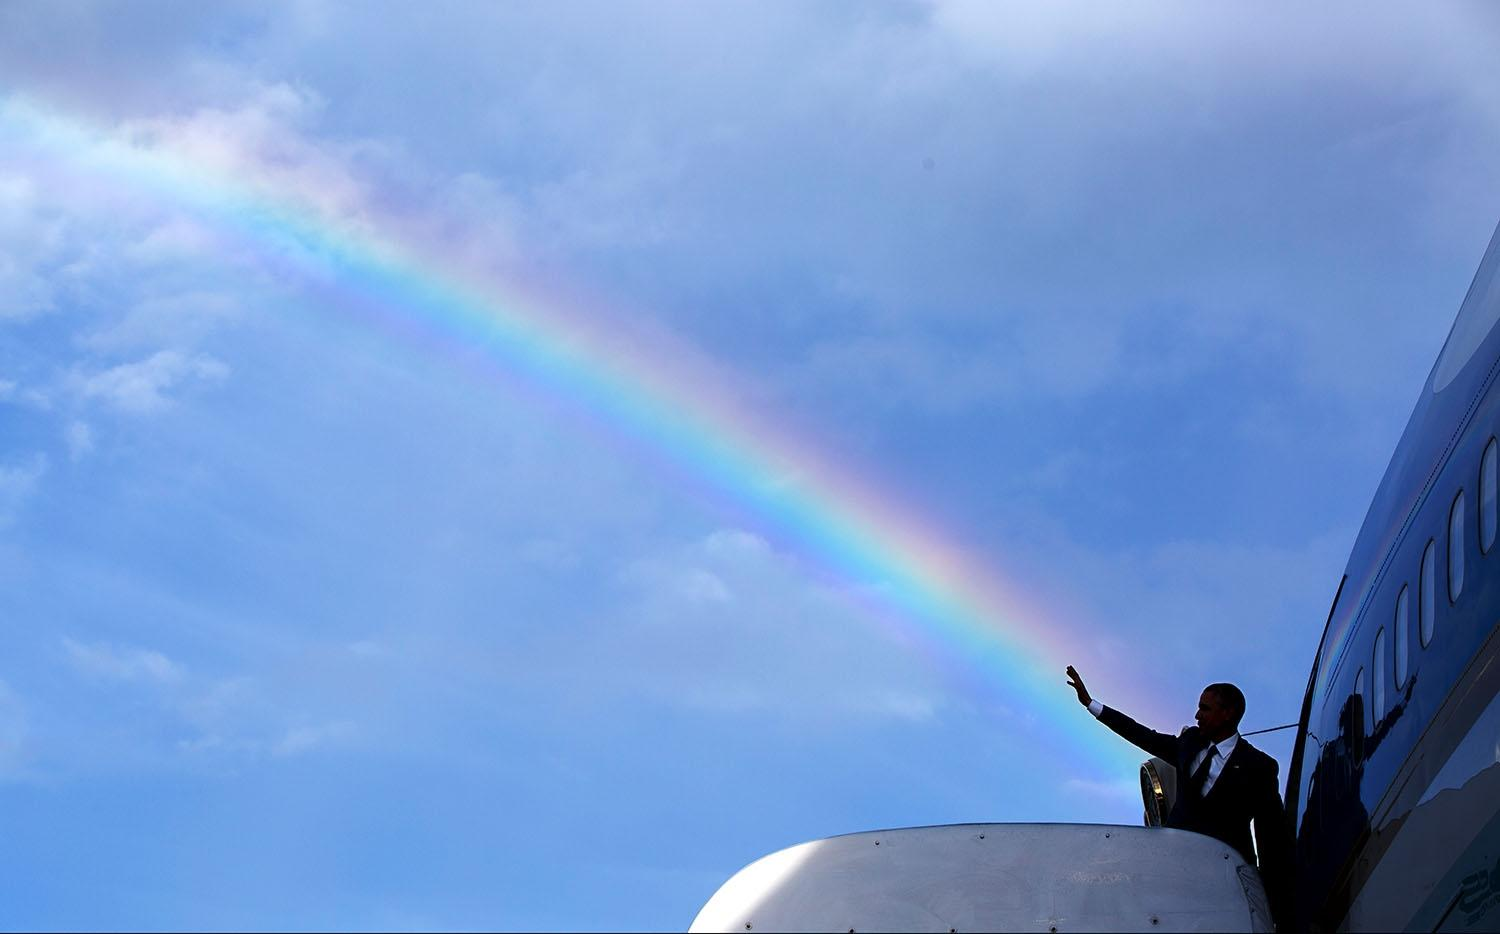 President Barack Obama boards Air Force One after a visit to Jamaica in 2014.  Official White House photo by Pete Souza